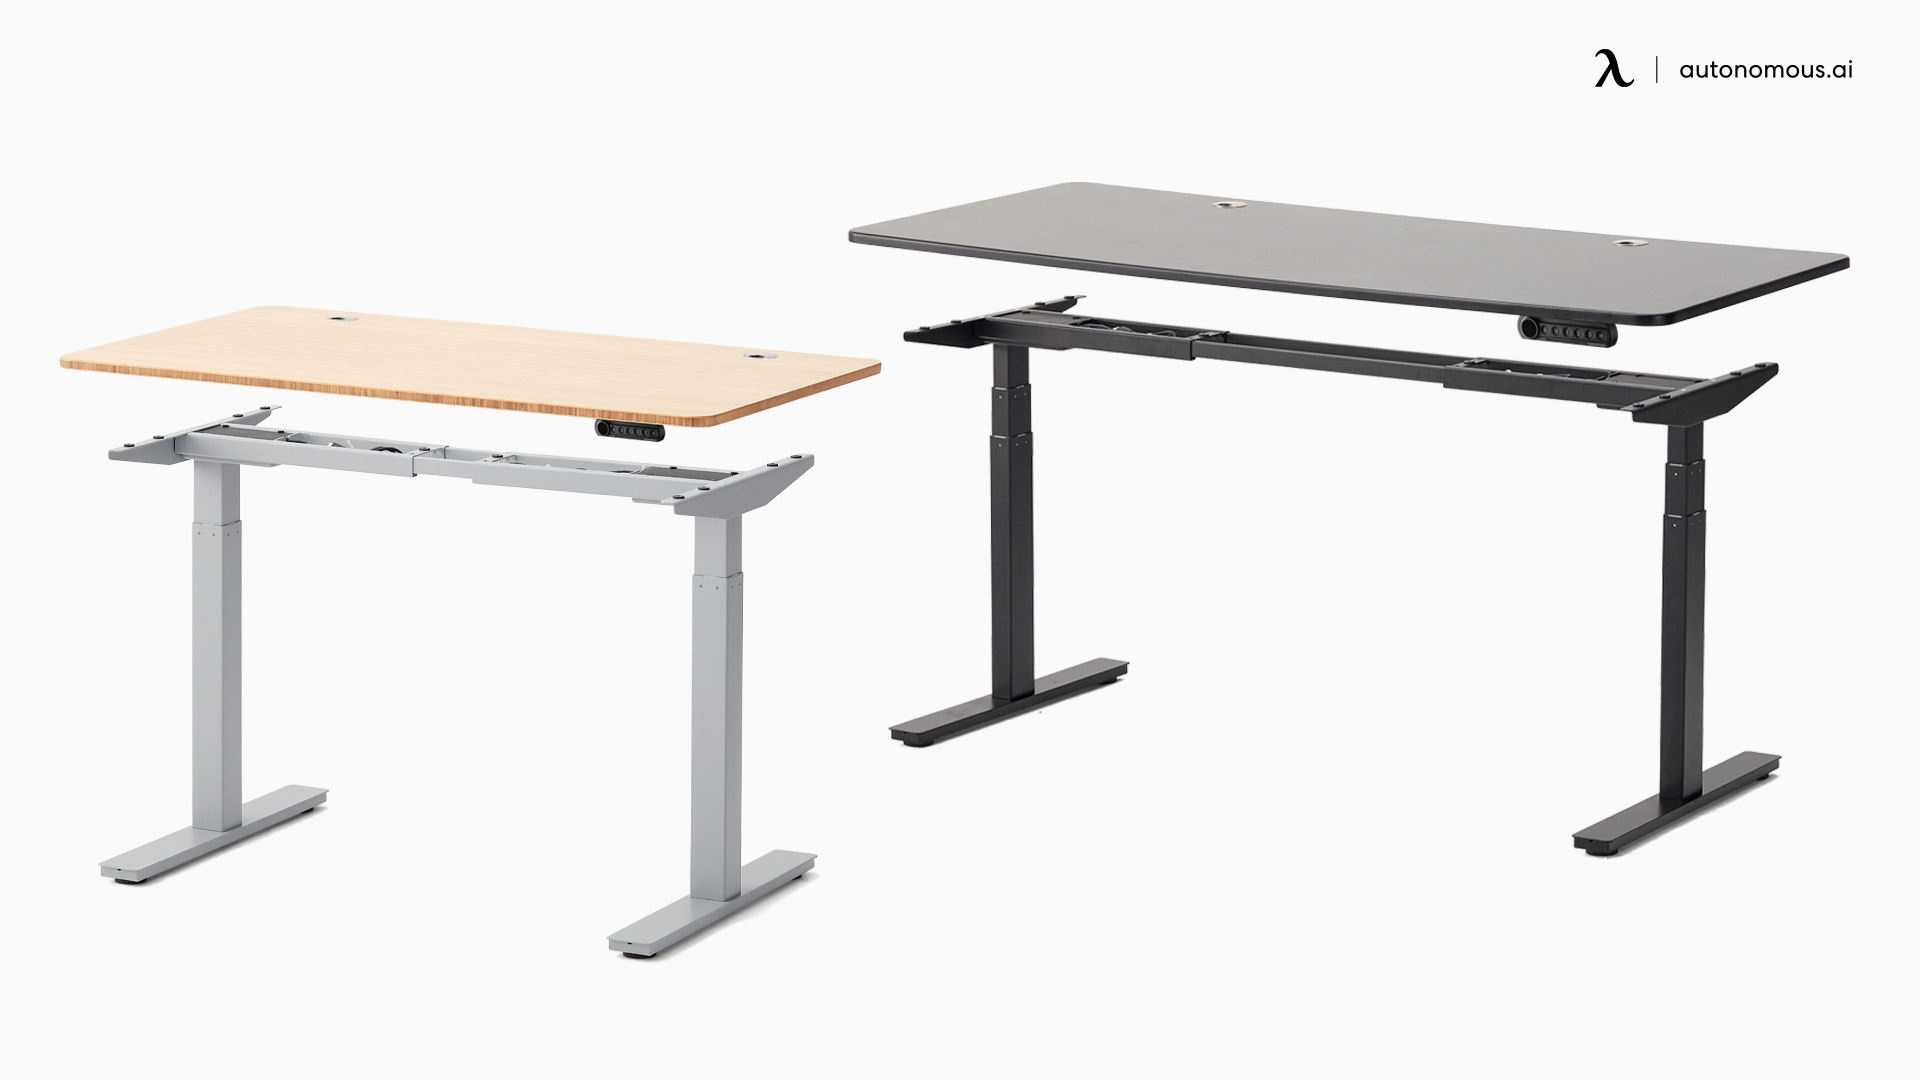 Why Choose to Build Your Own Electric Standing Desk?